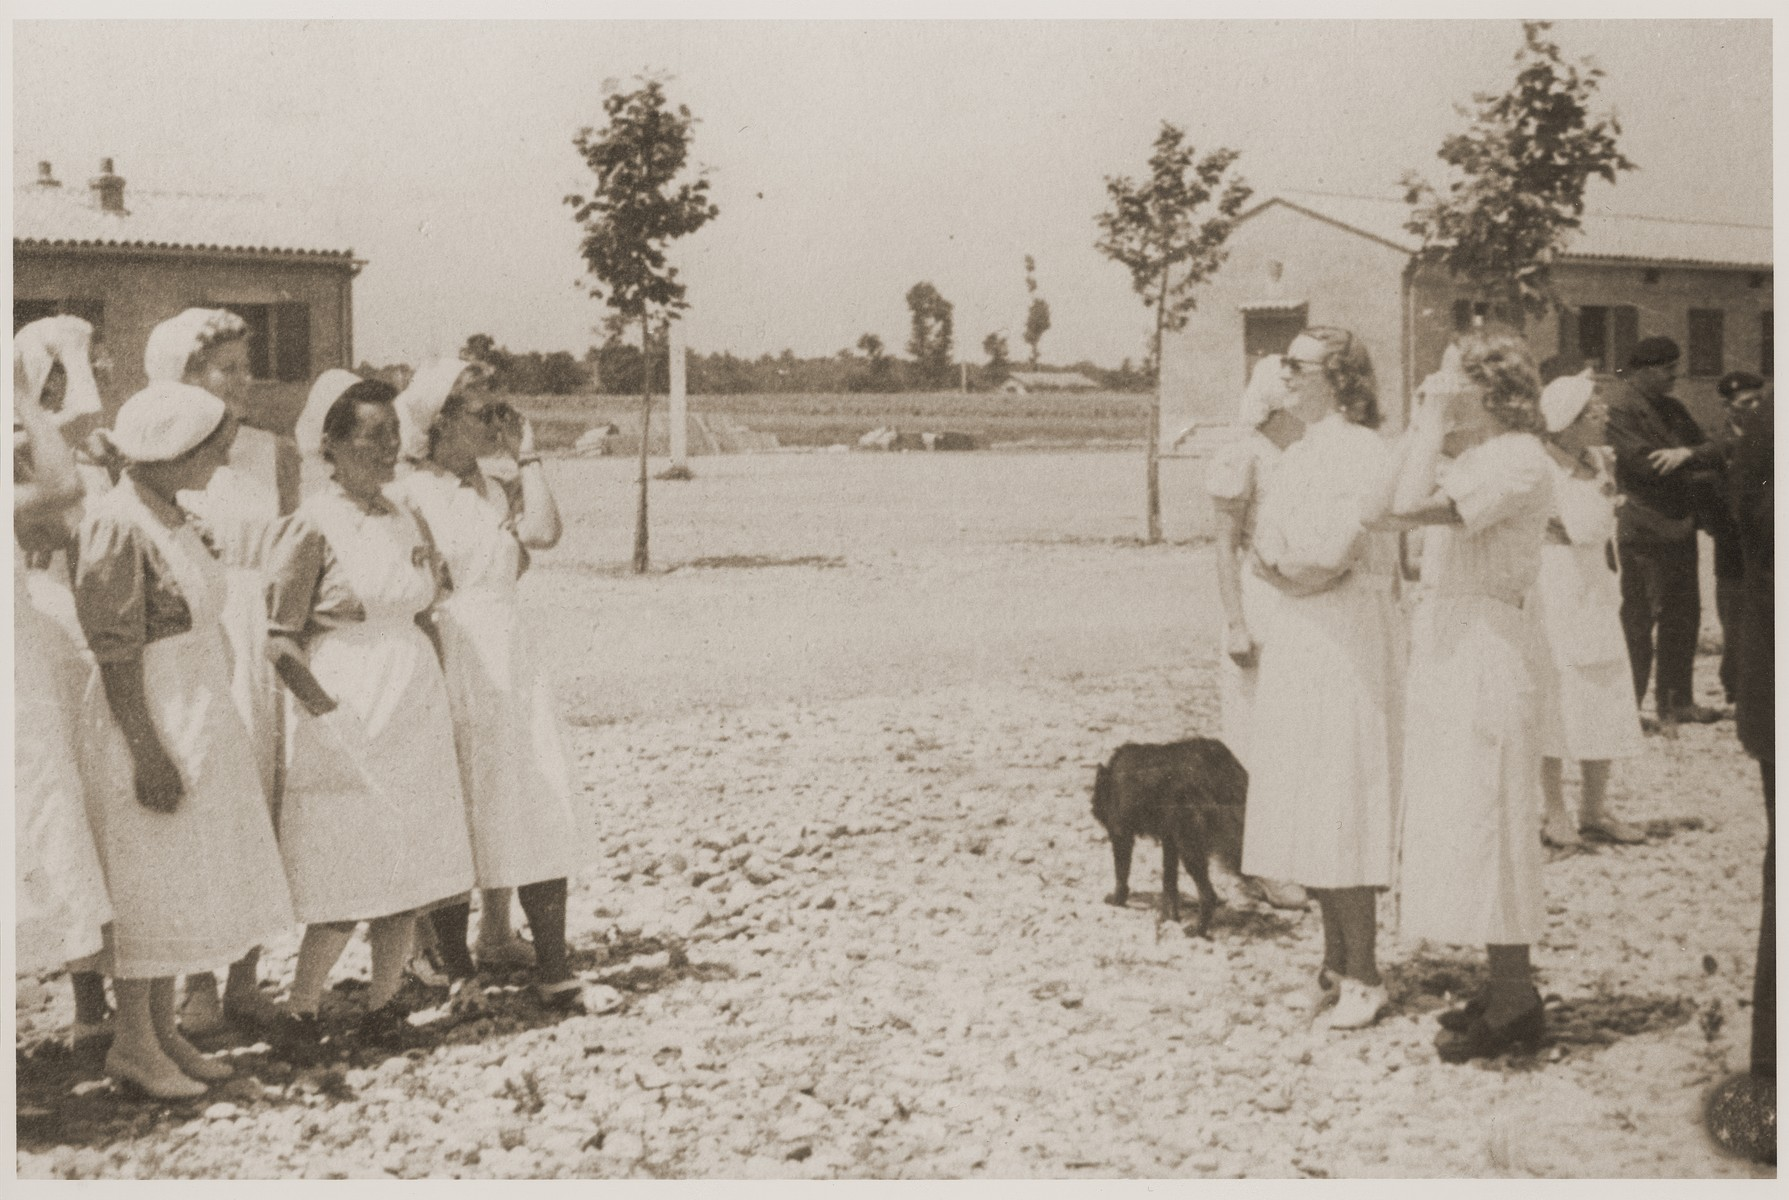 Some nurses gather outside on the grounds of the Recebedou camp.